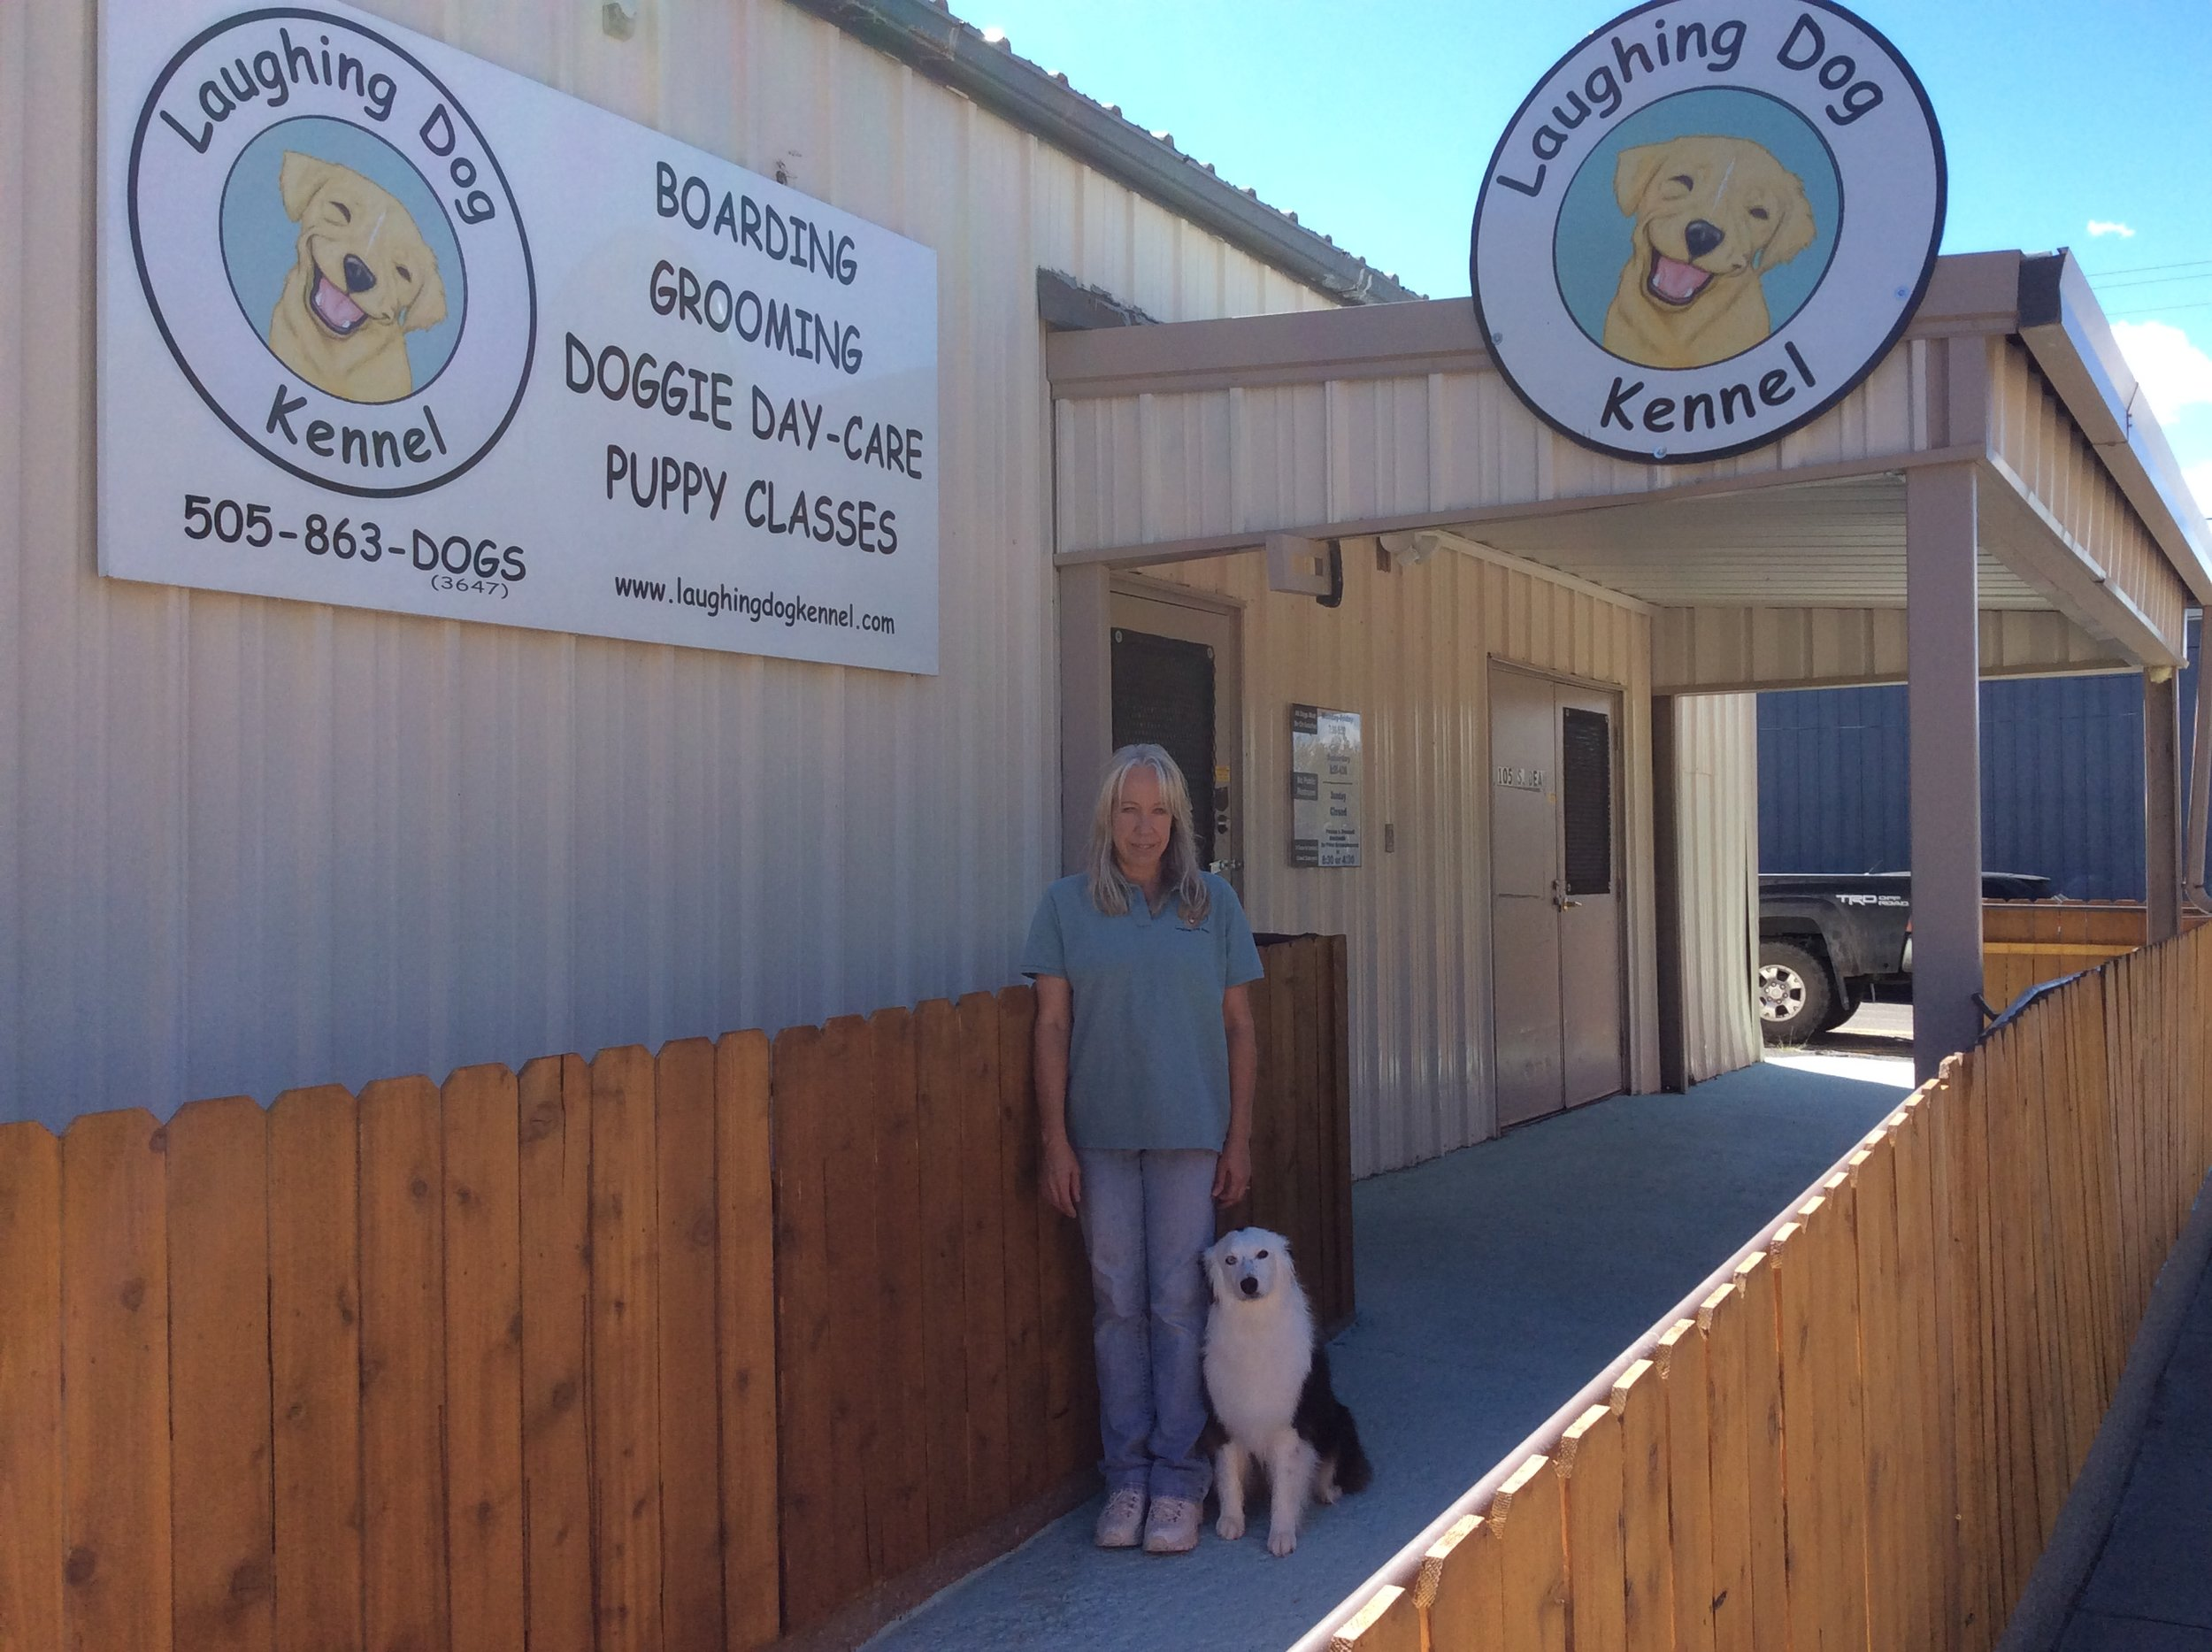 Laughing Dog Kennel